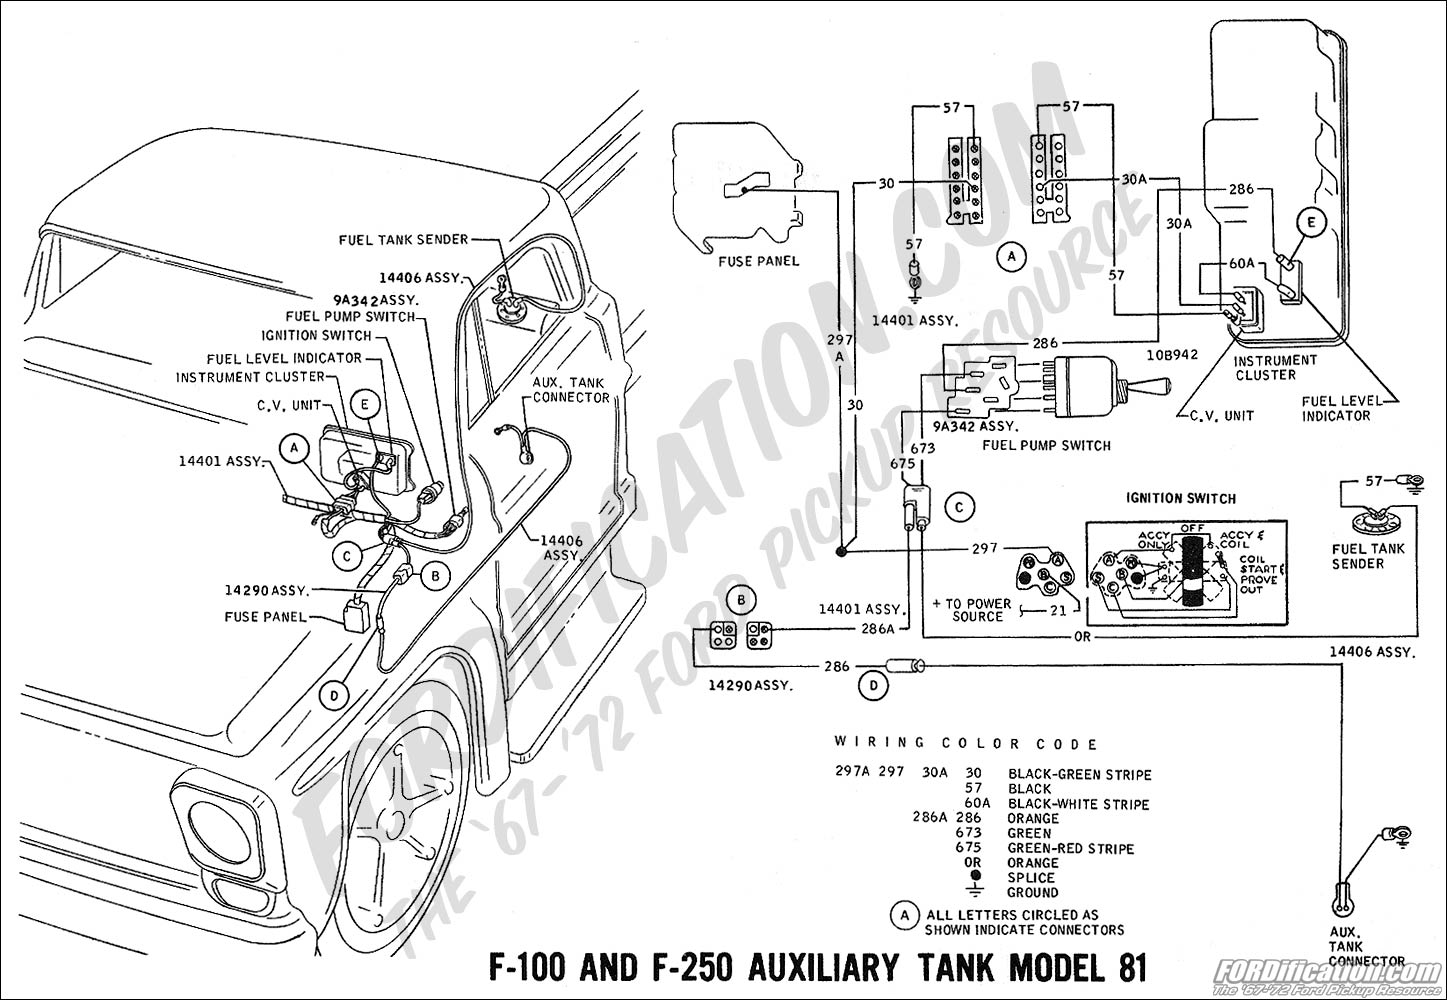 1969 ford f250 wiring diagram simple wiring diagram1969 ford f100 fuse box box wiring diagram 1975 ford f 250 wiring 1969 ford f250 wiring diagram